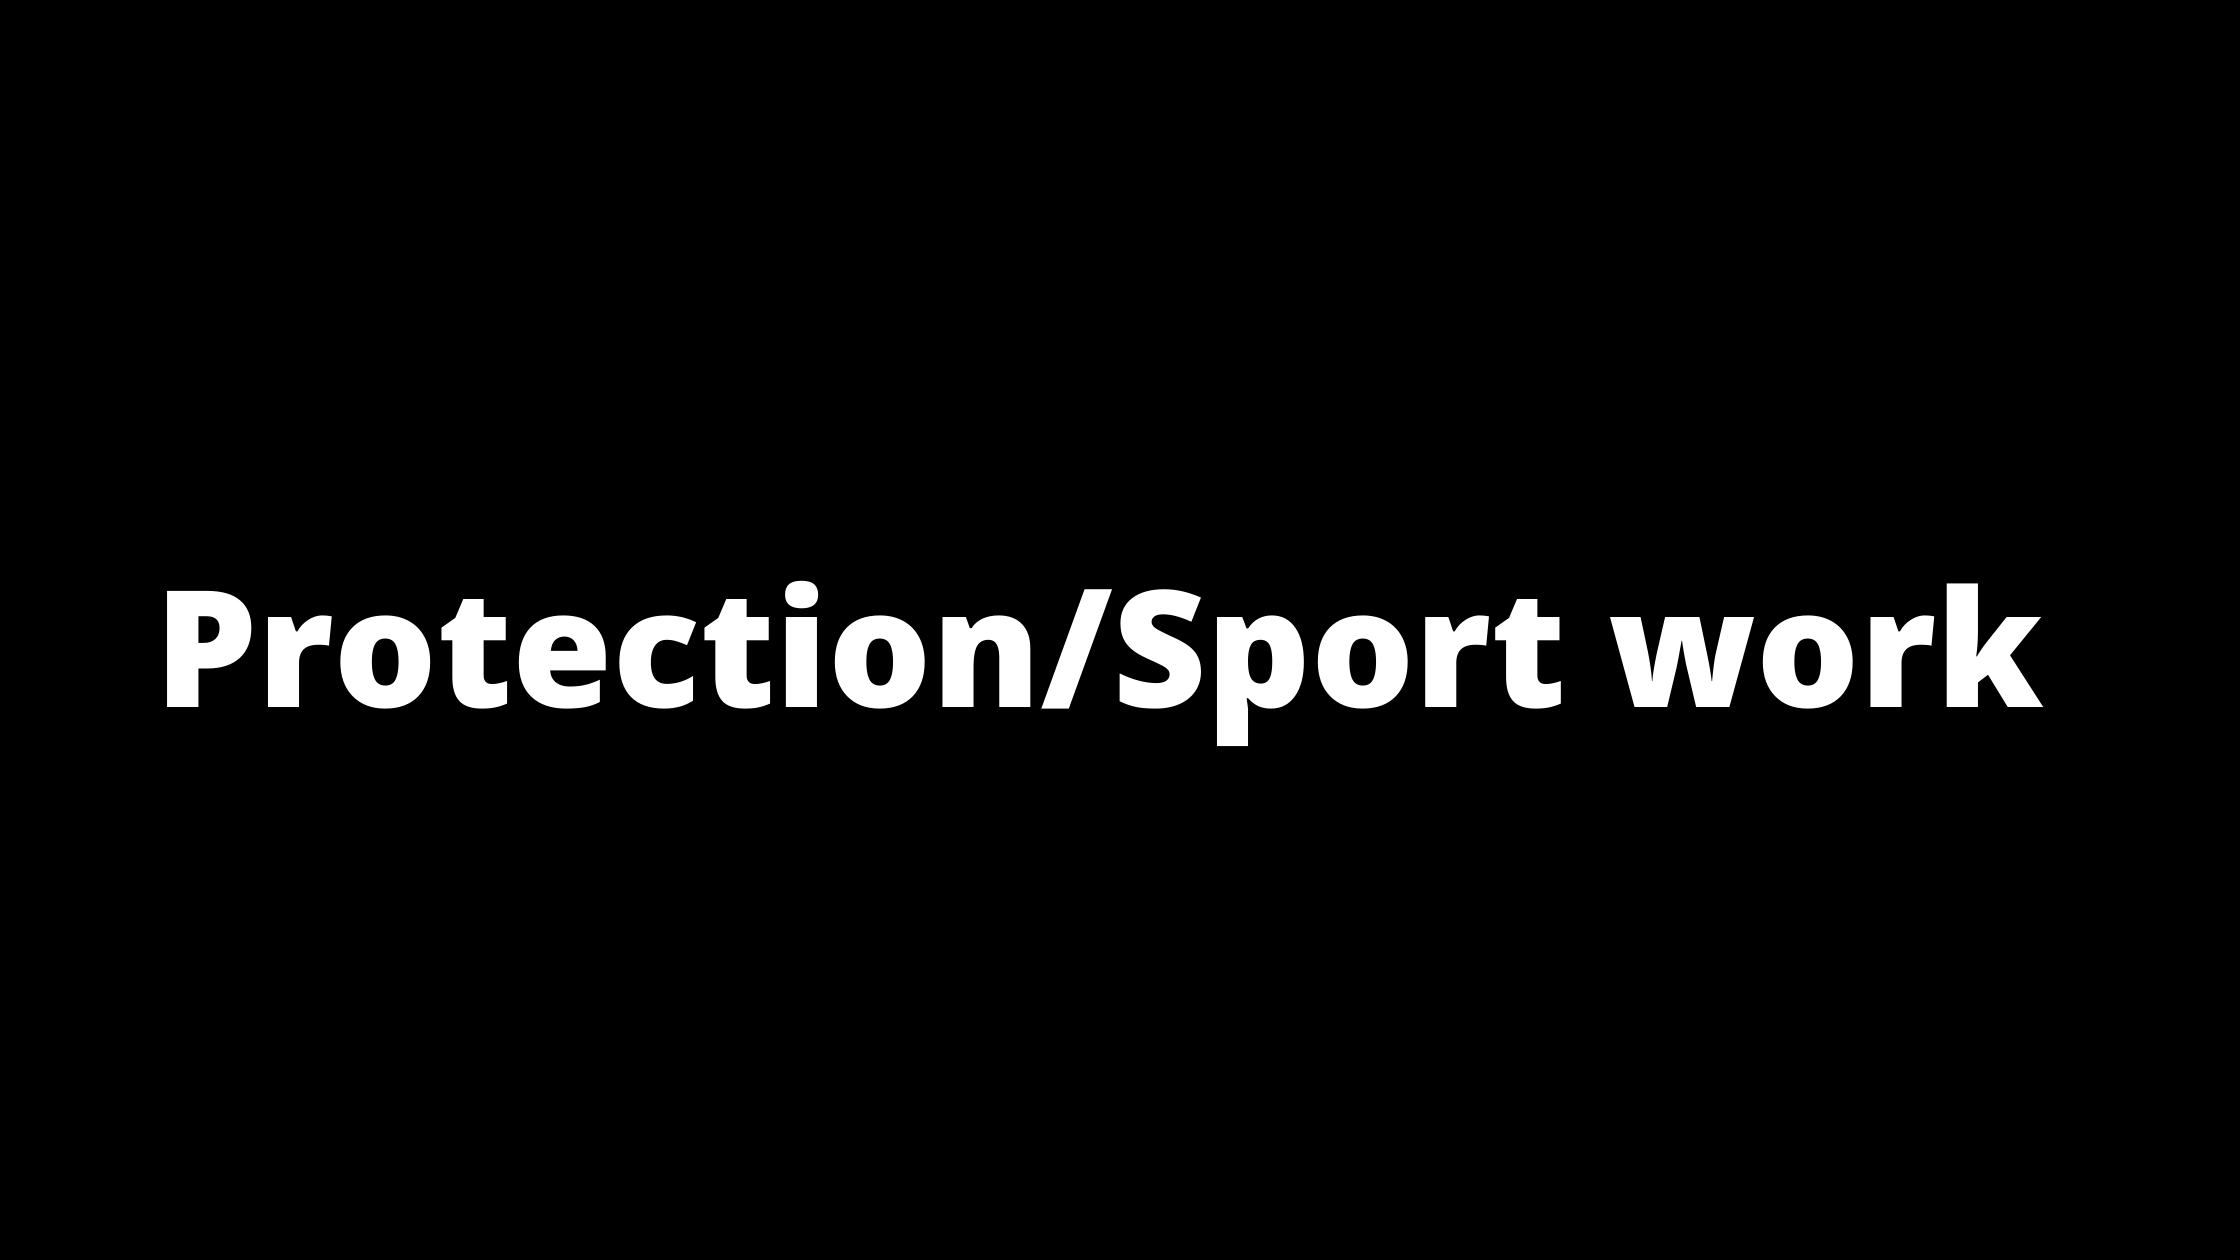 ProtectionSport work-1